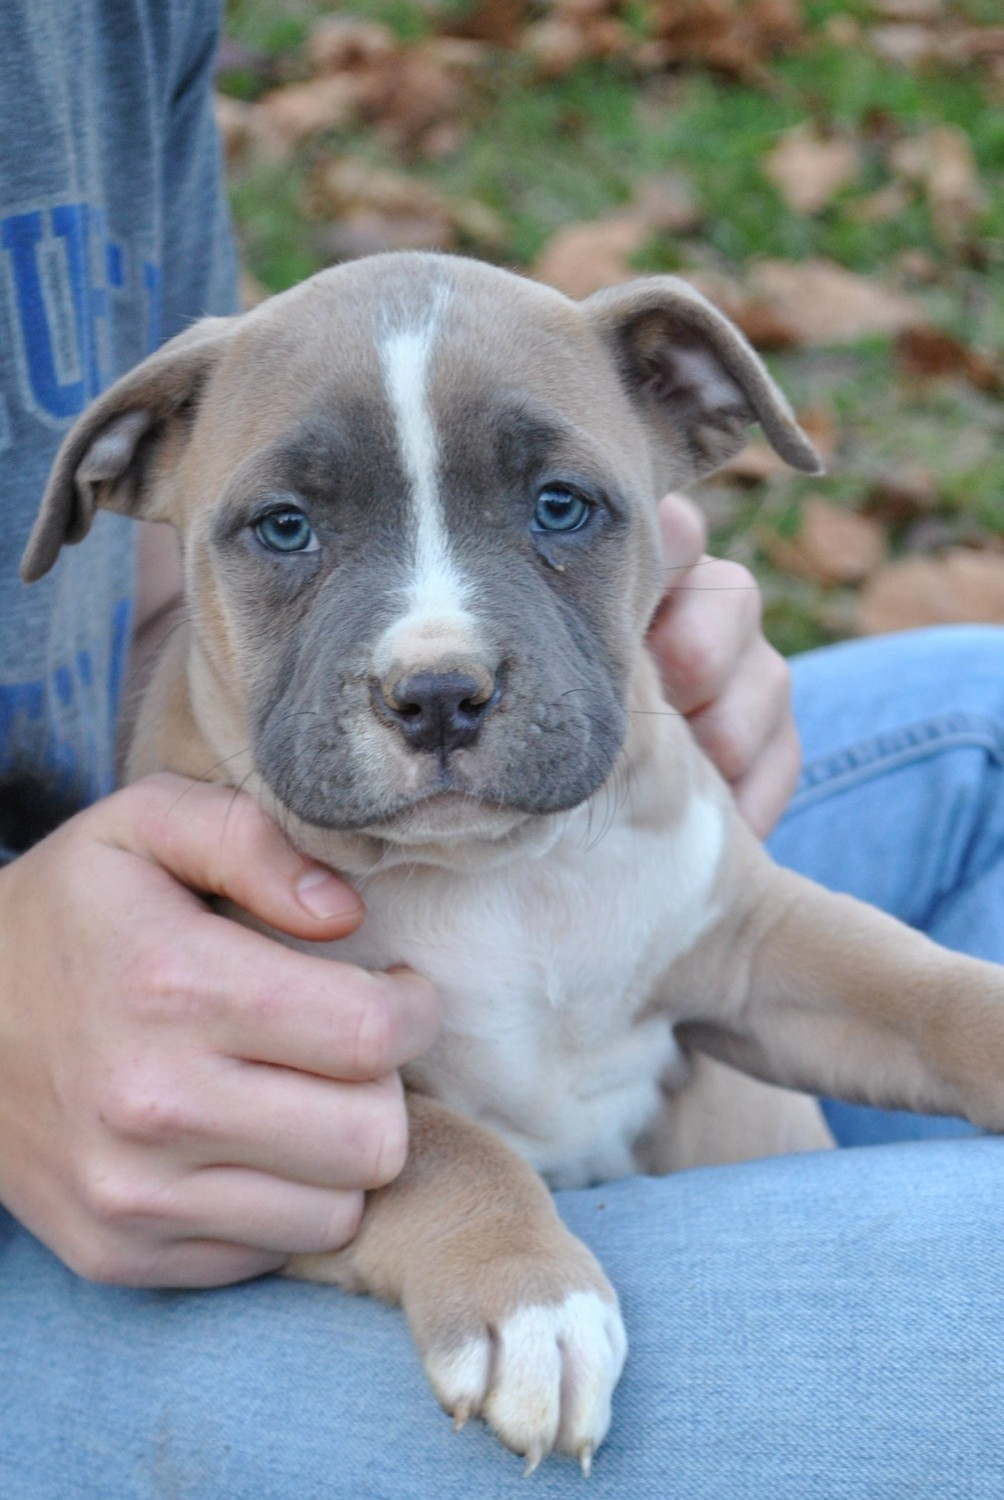 Buy Puppies For Sale Pitbull In Russia